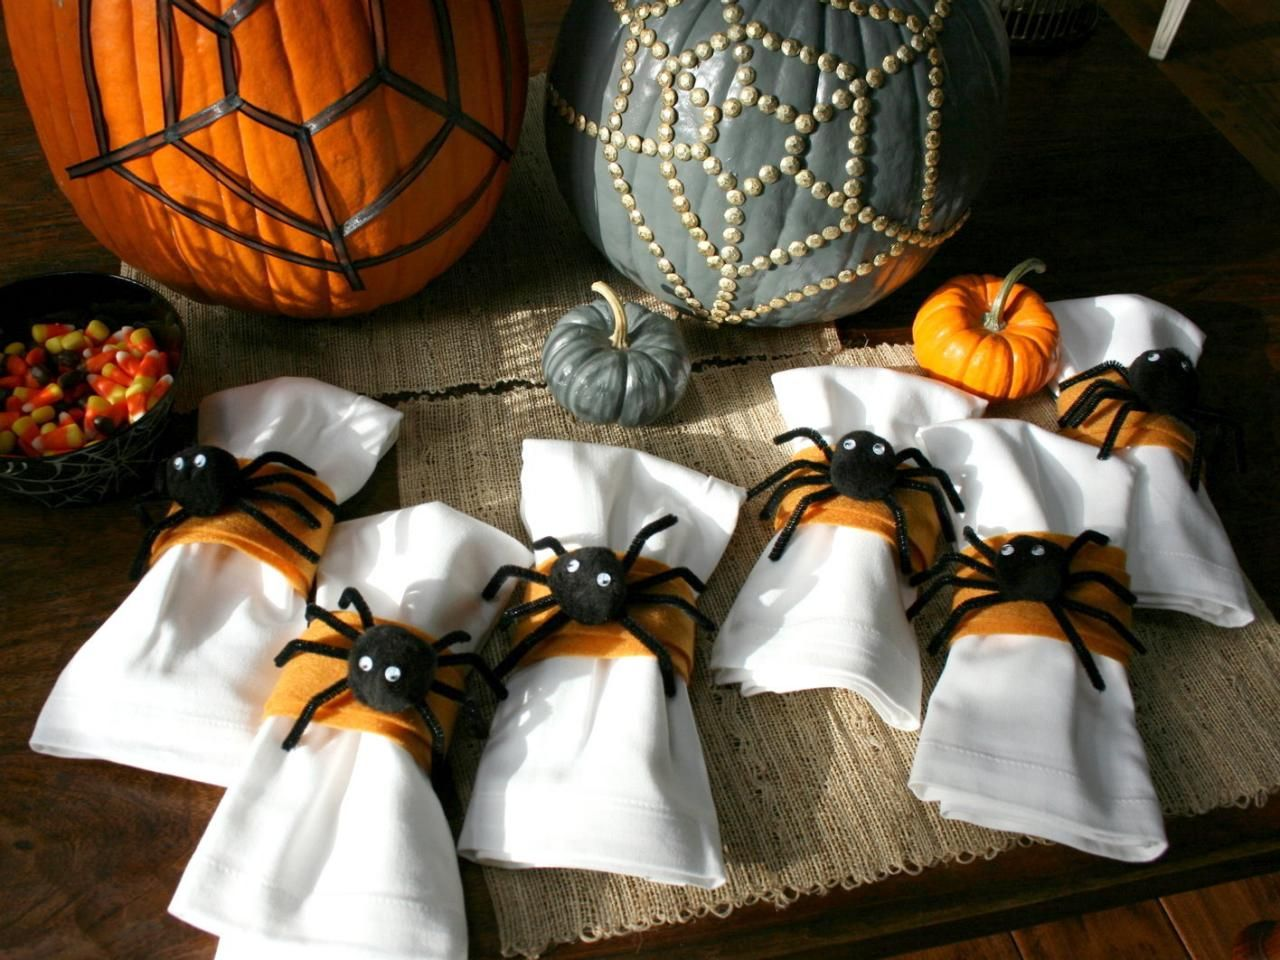 How to Make Spider Napkin Rings Hgtv, Halloween decorating ideas - How To Make Halloween Decorations